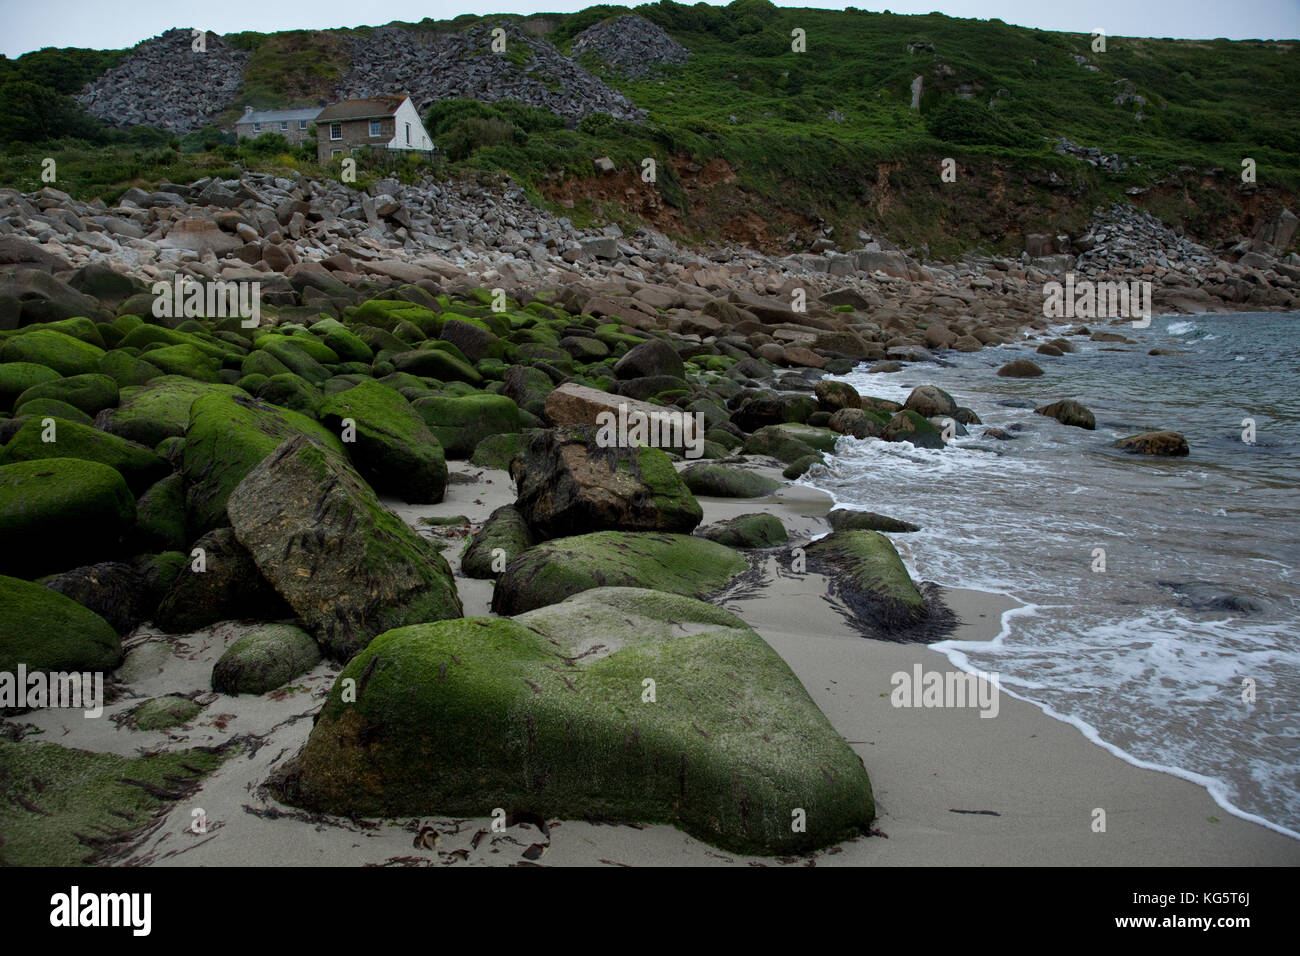 The English countryside meets the sea in Lamorna Cove, Cornwall. - Stock Image